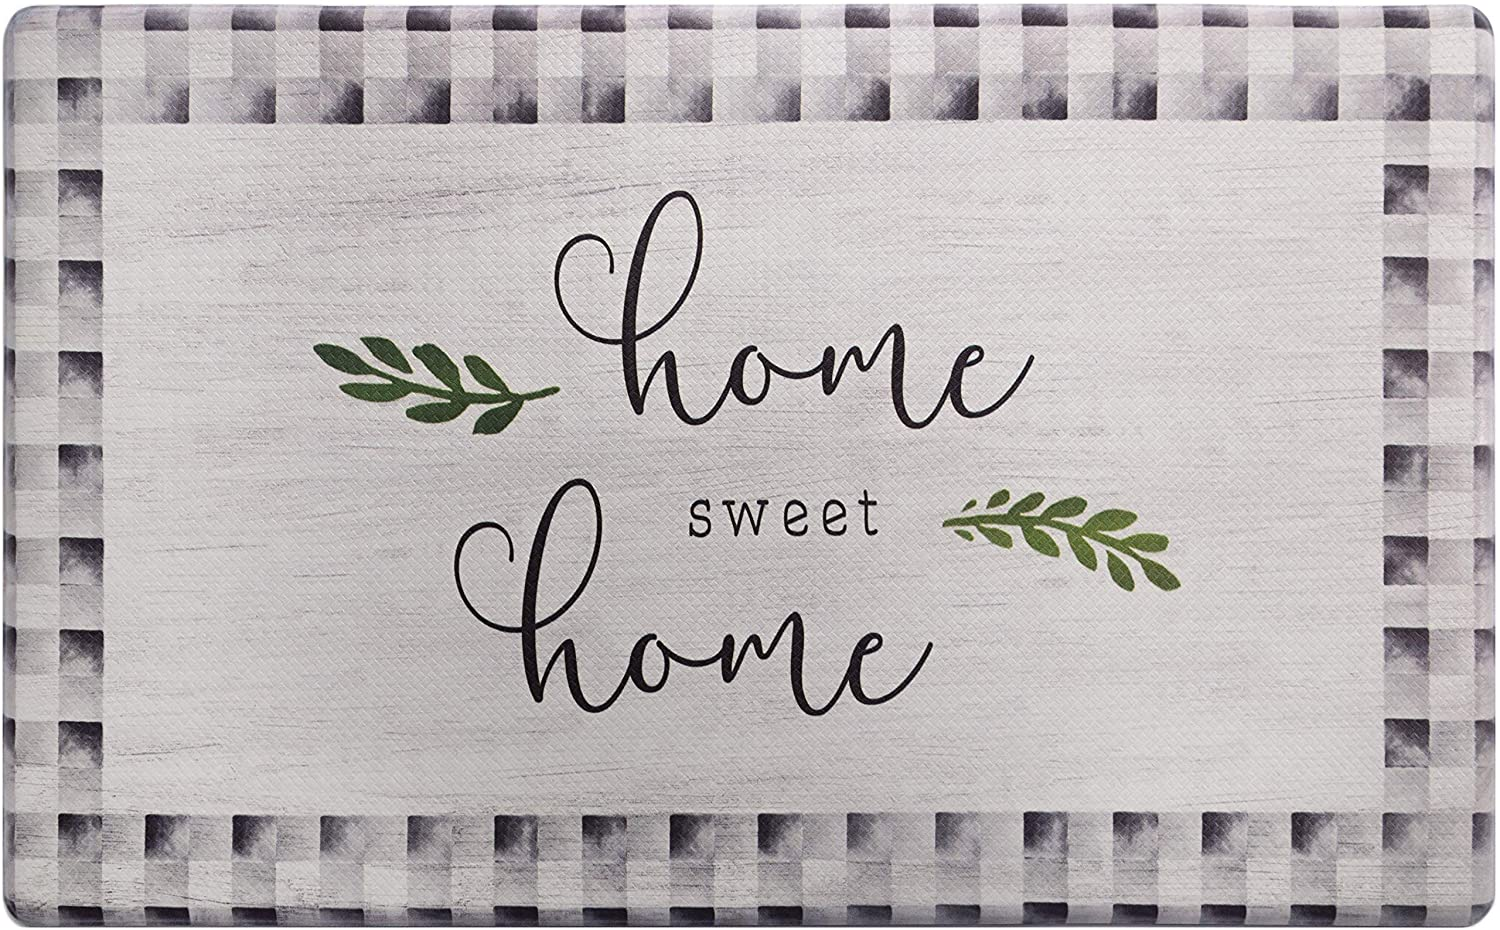 SoHome Cozy Living Anti Fatigue Kitchen Mat for Floor, Home Sweet Home Themed Cushioned Kitchen Runner Rug Mat, Non Slip, Easy Wipe Clean, 1/2 Inch Thick, 18